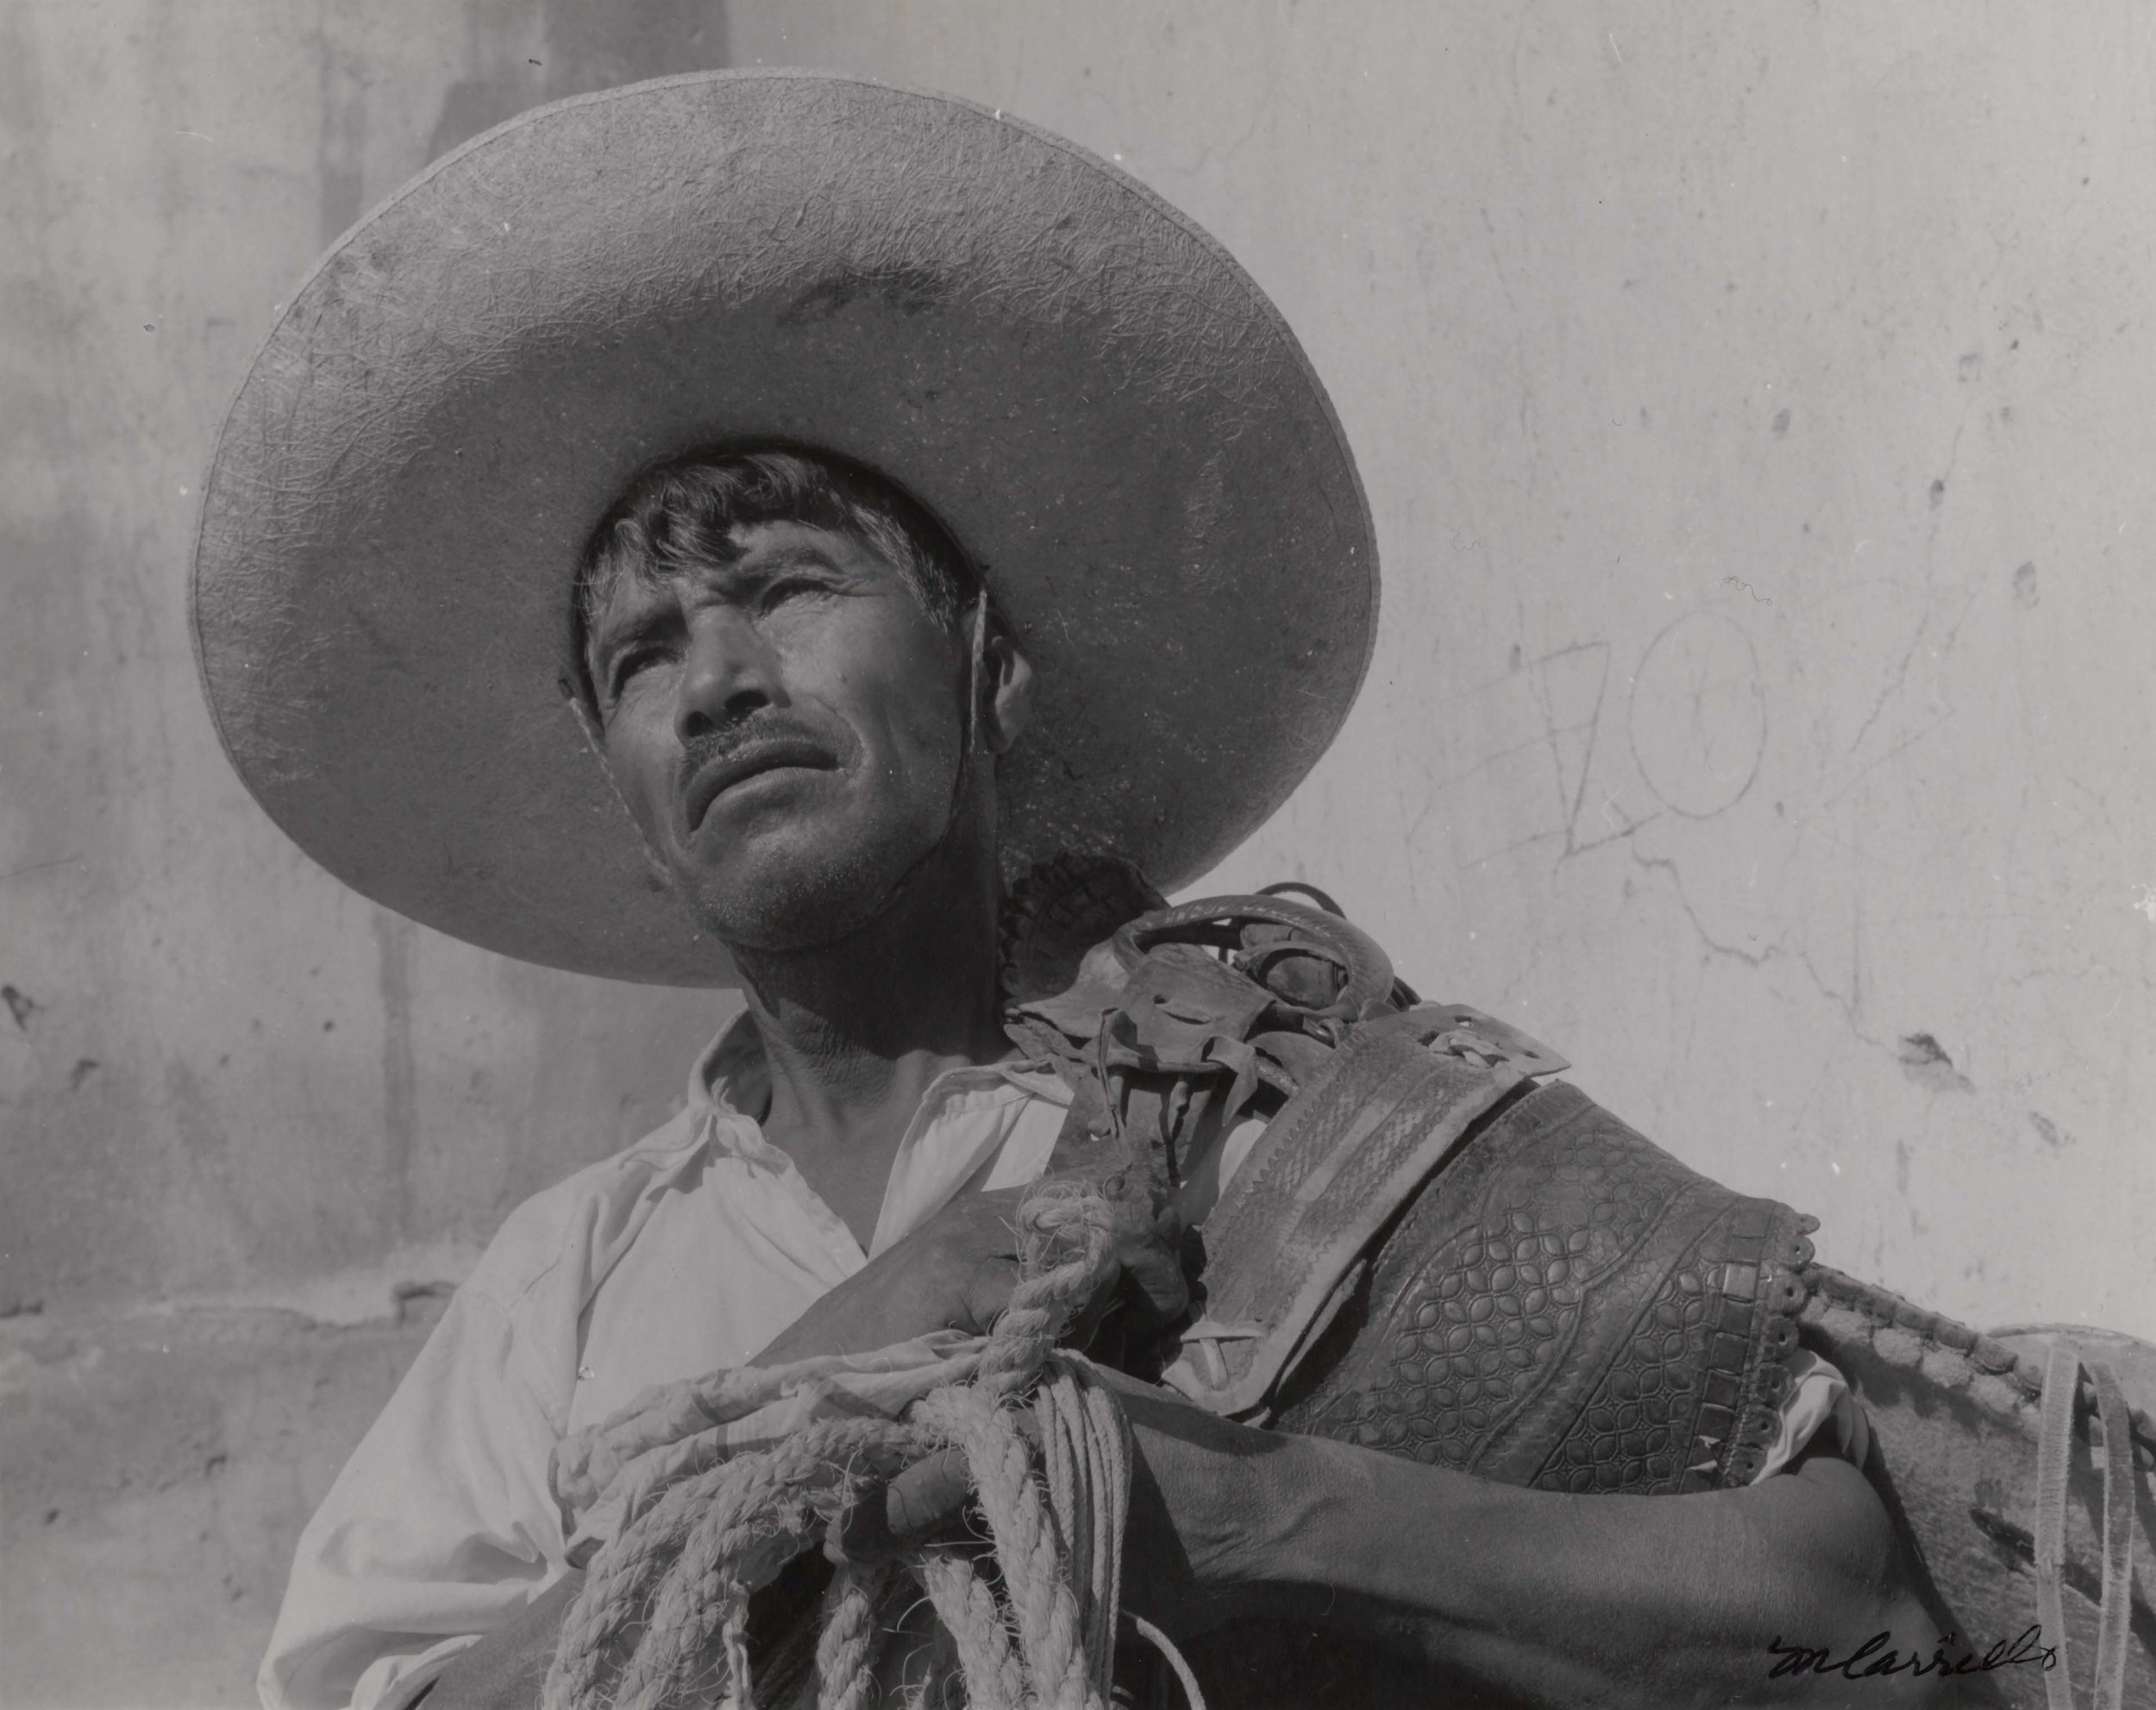 Cowboy with Saddle and Sombrero  (Santa Rosa, Guanajuato), 1960. Black & White photograph on paper. 8 x 10